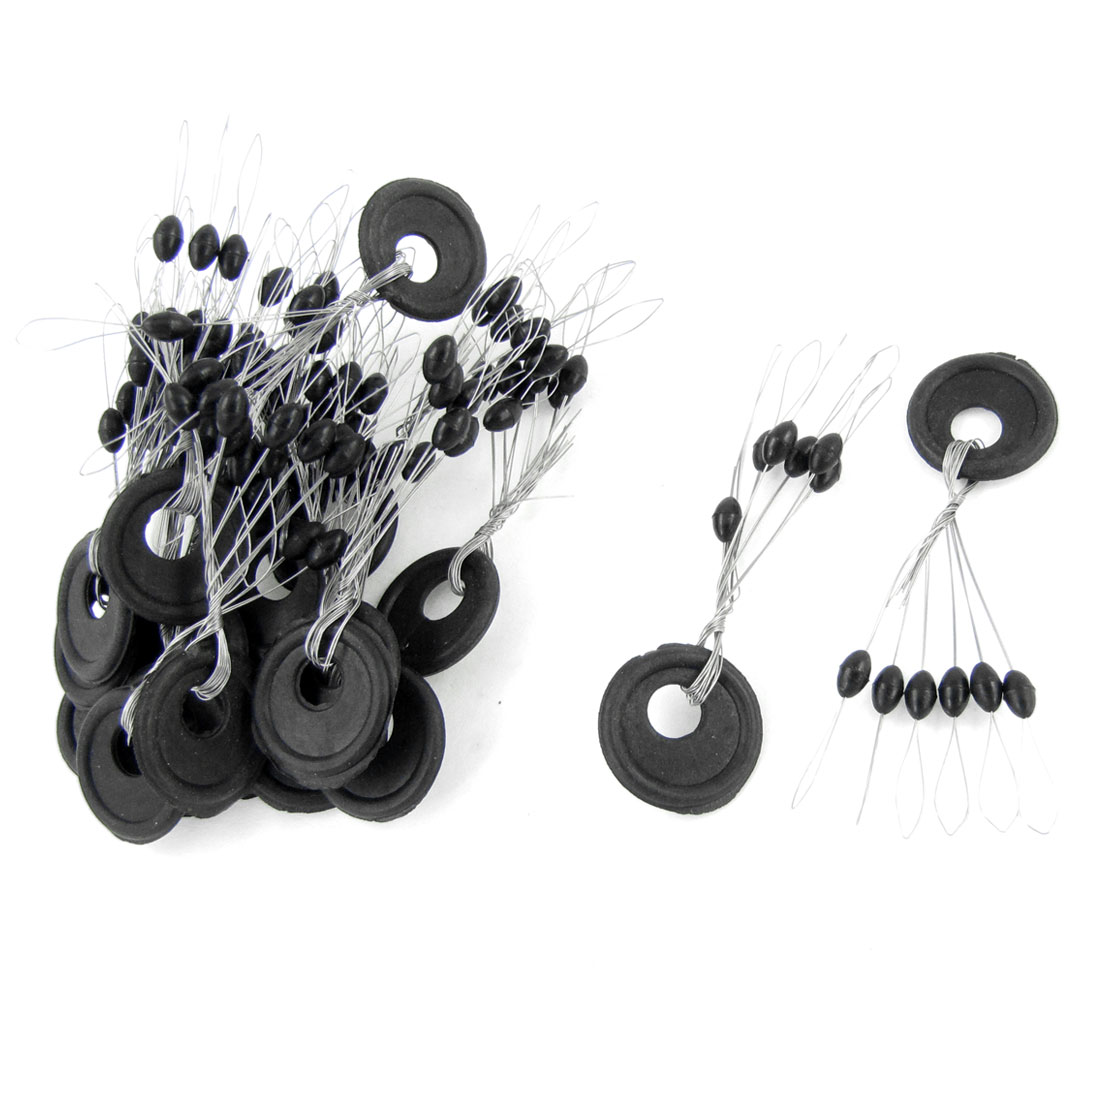 20 Pcs Size L 6 in 1 Round Shape Black Rubber Stopper Bead Fishing Bobber